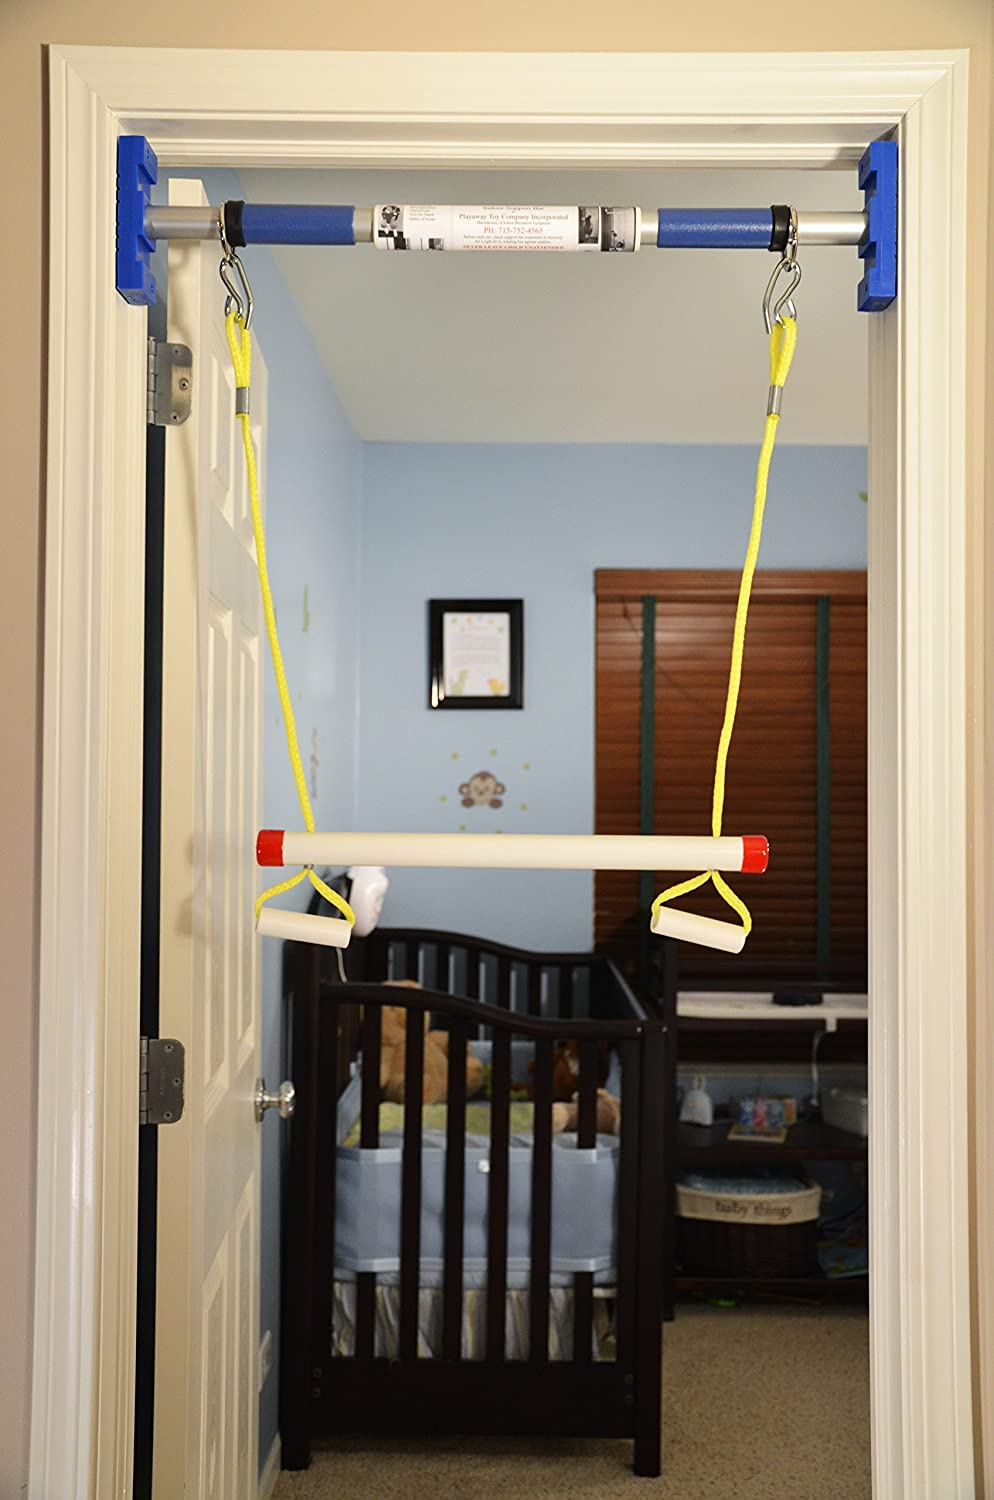 Rainy Day Playground Indoor trapeze bar (to be used with support system) Playaway Toy Co.